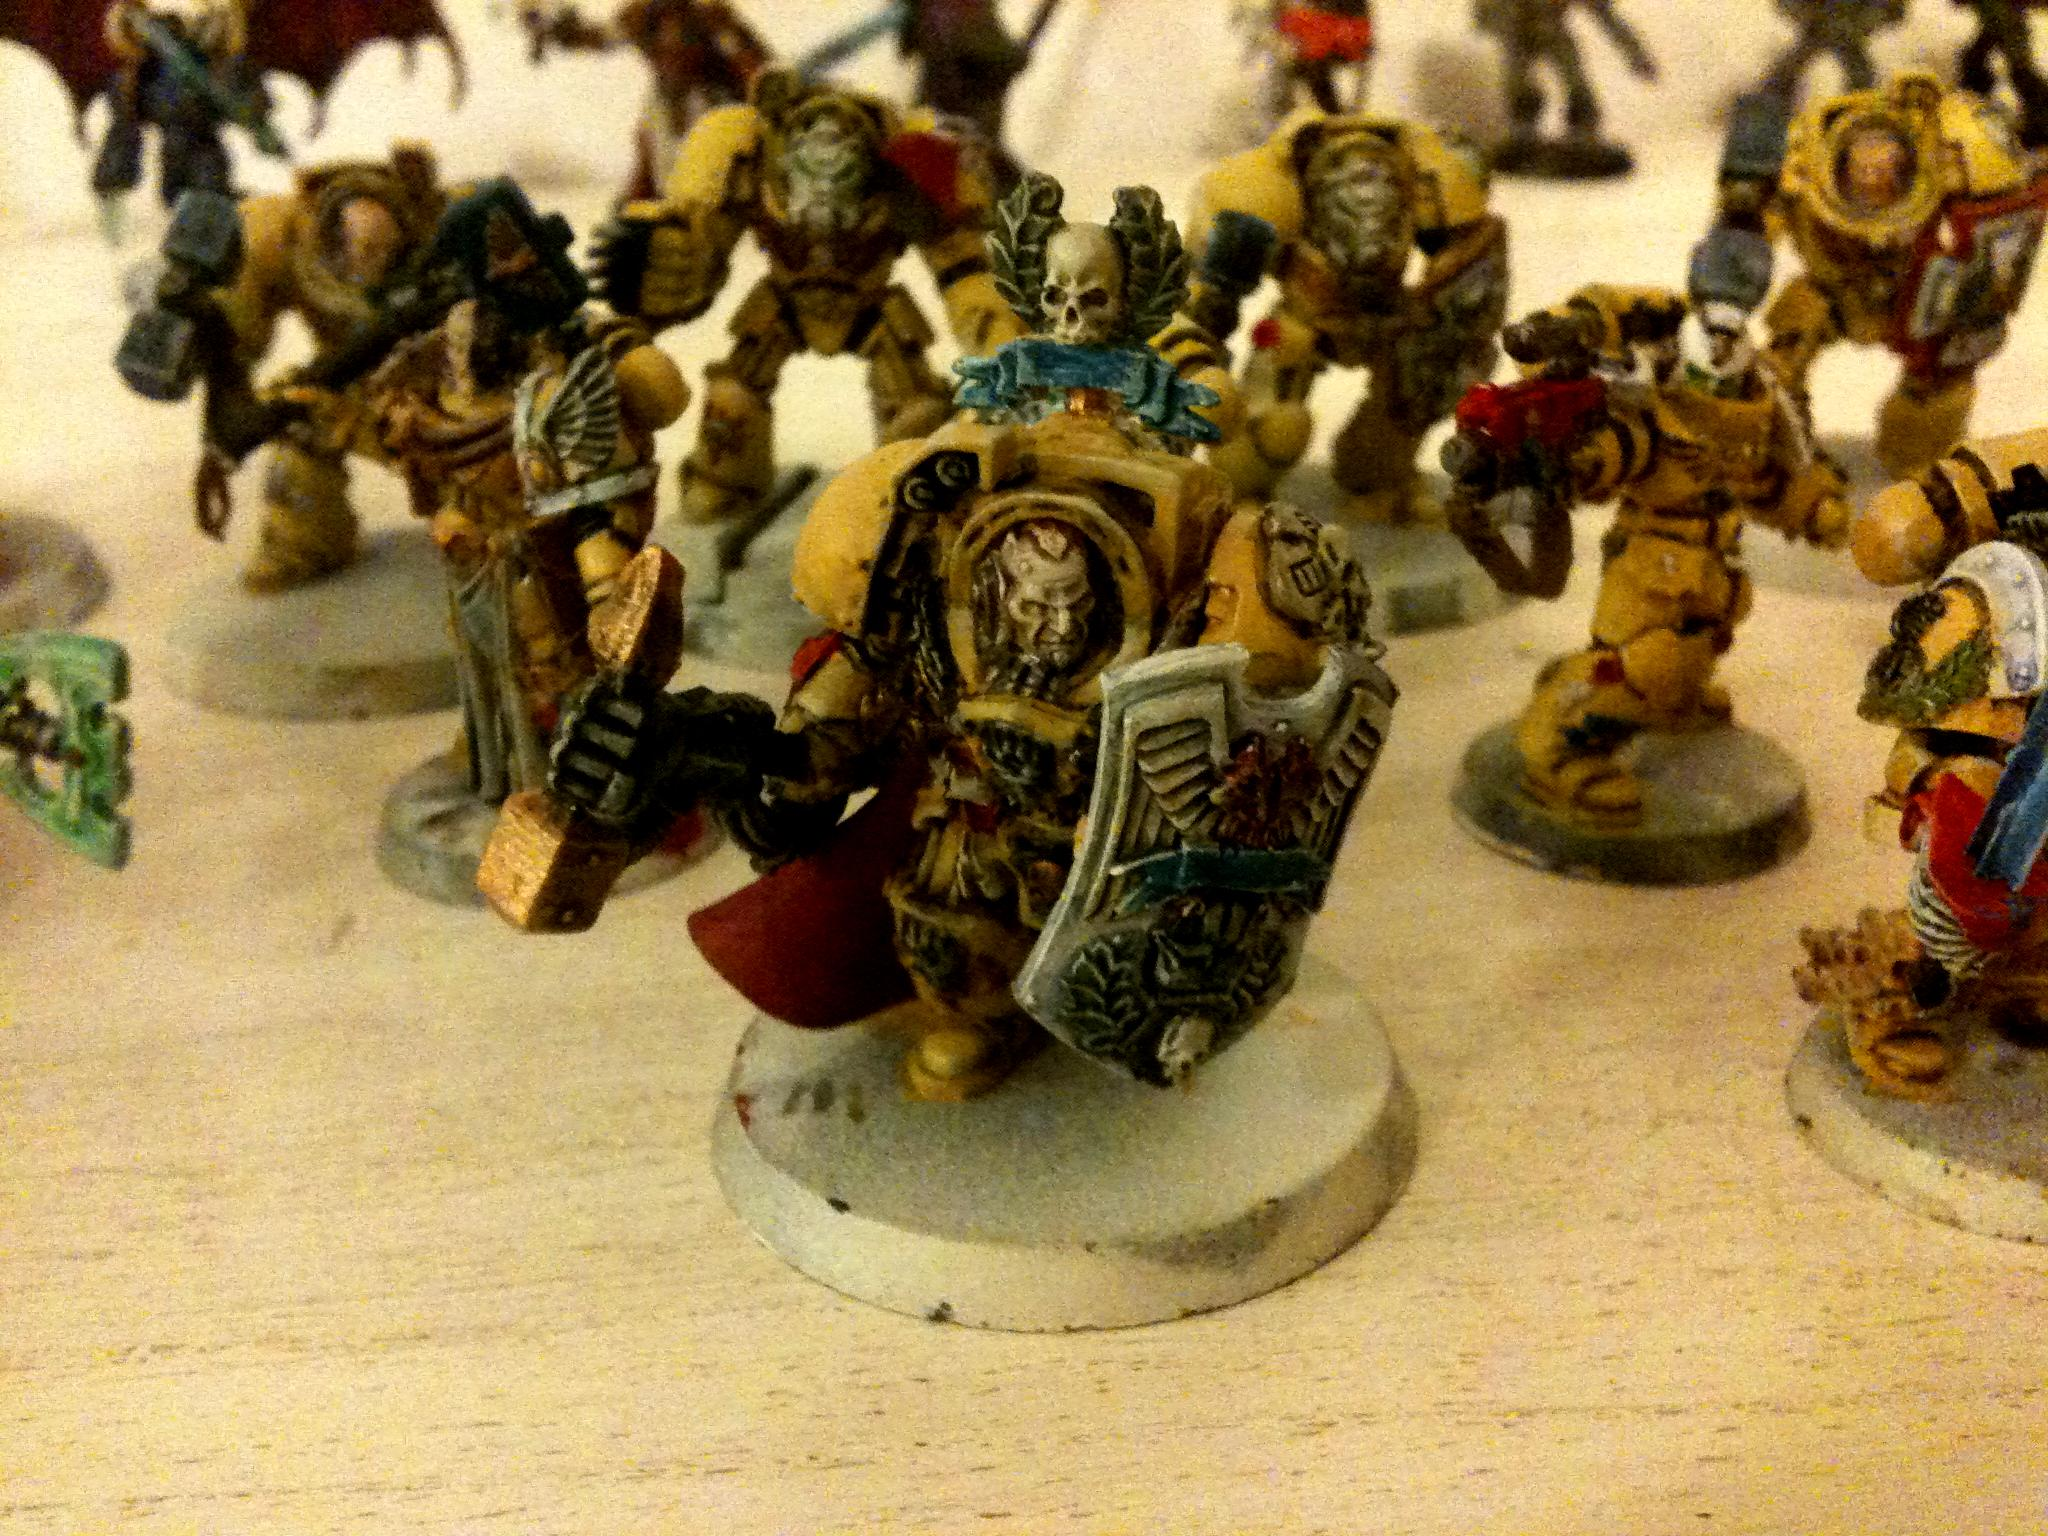 Imperial Fists, Imperial Fists